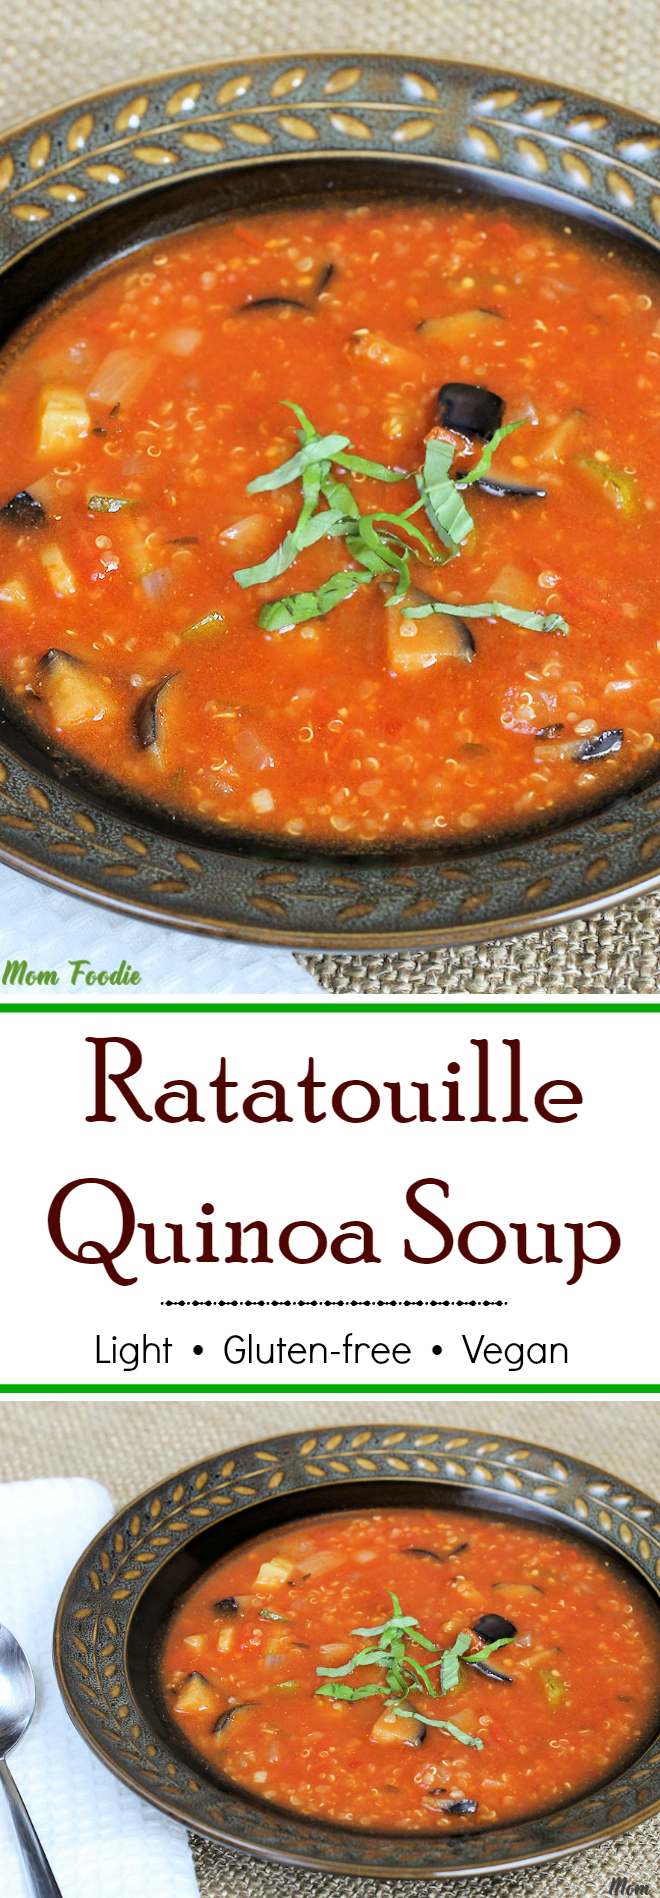 Light Ratatouille Quinoa Soup - gluten-free & vegan recipe